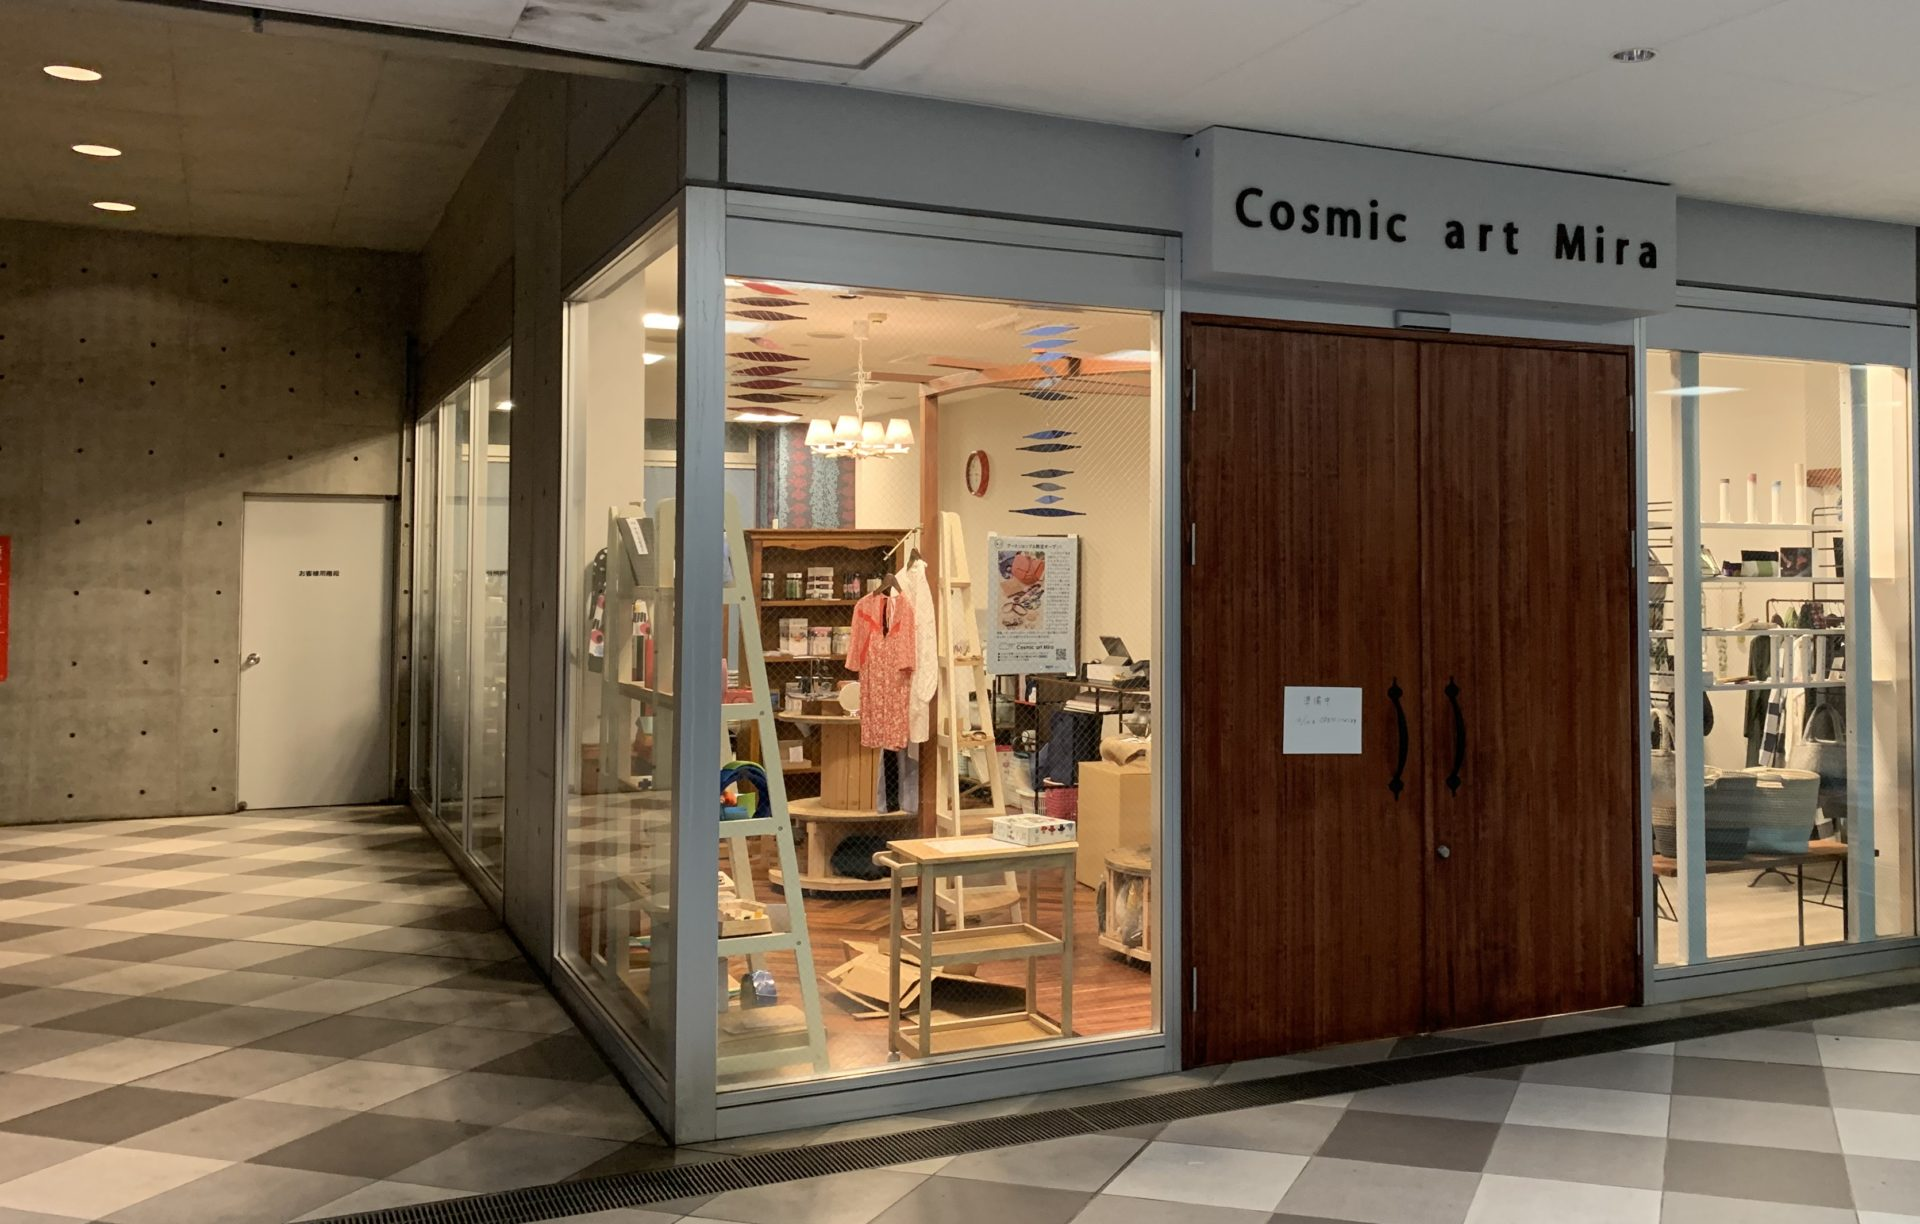 Art School & Shop Cosmic art Mira